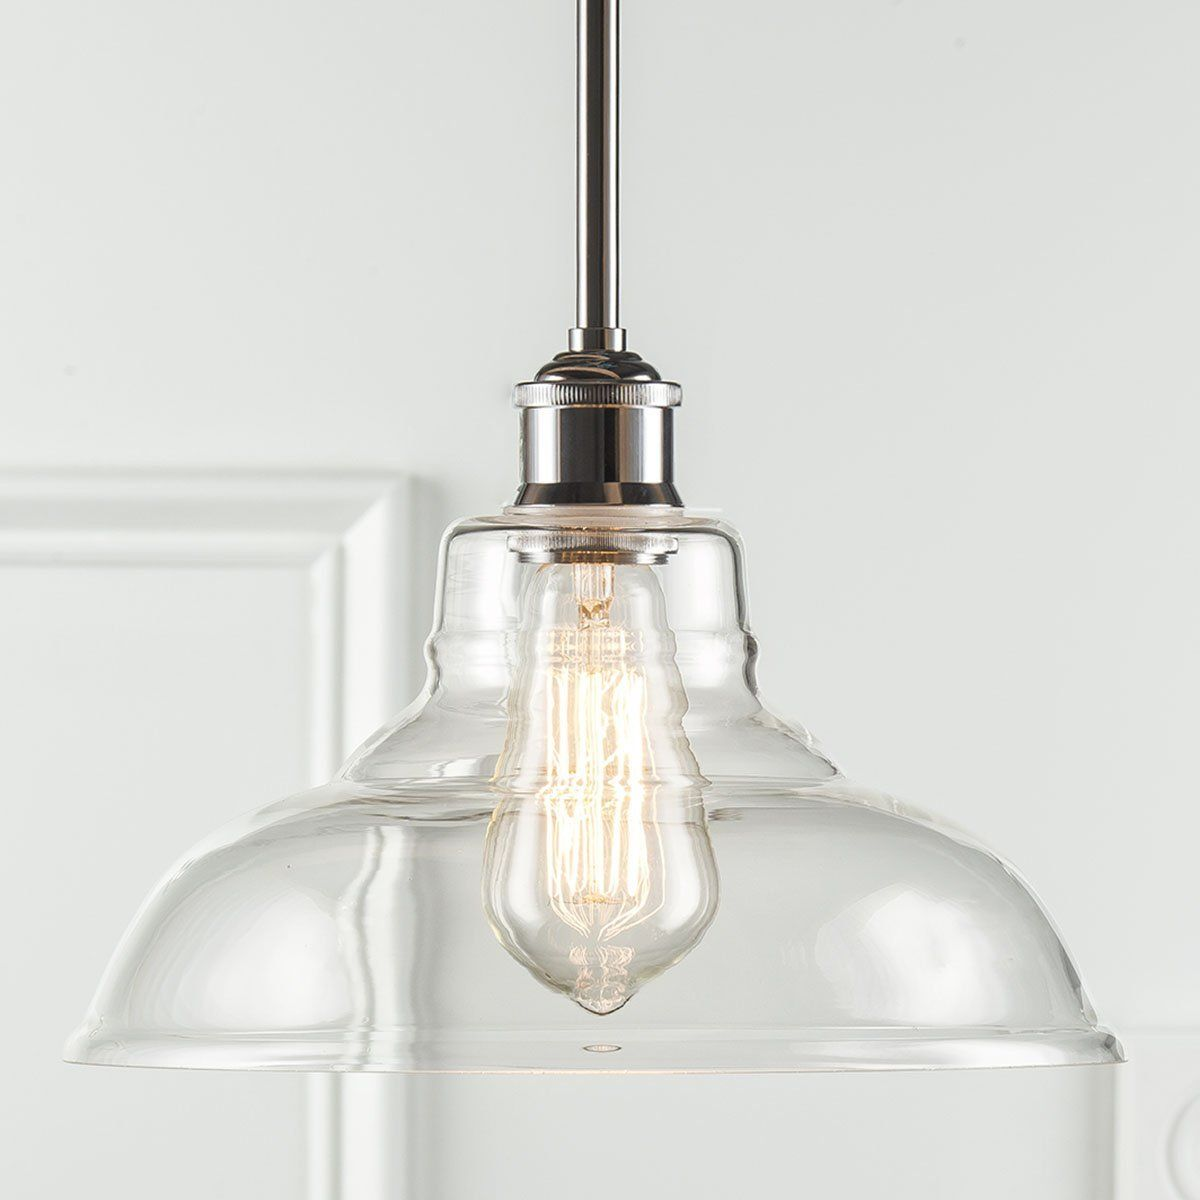 Industrial Glass Pendant Light Kitchen Pendant Light By GoPioneers